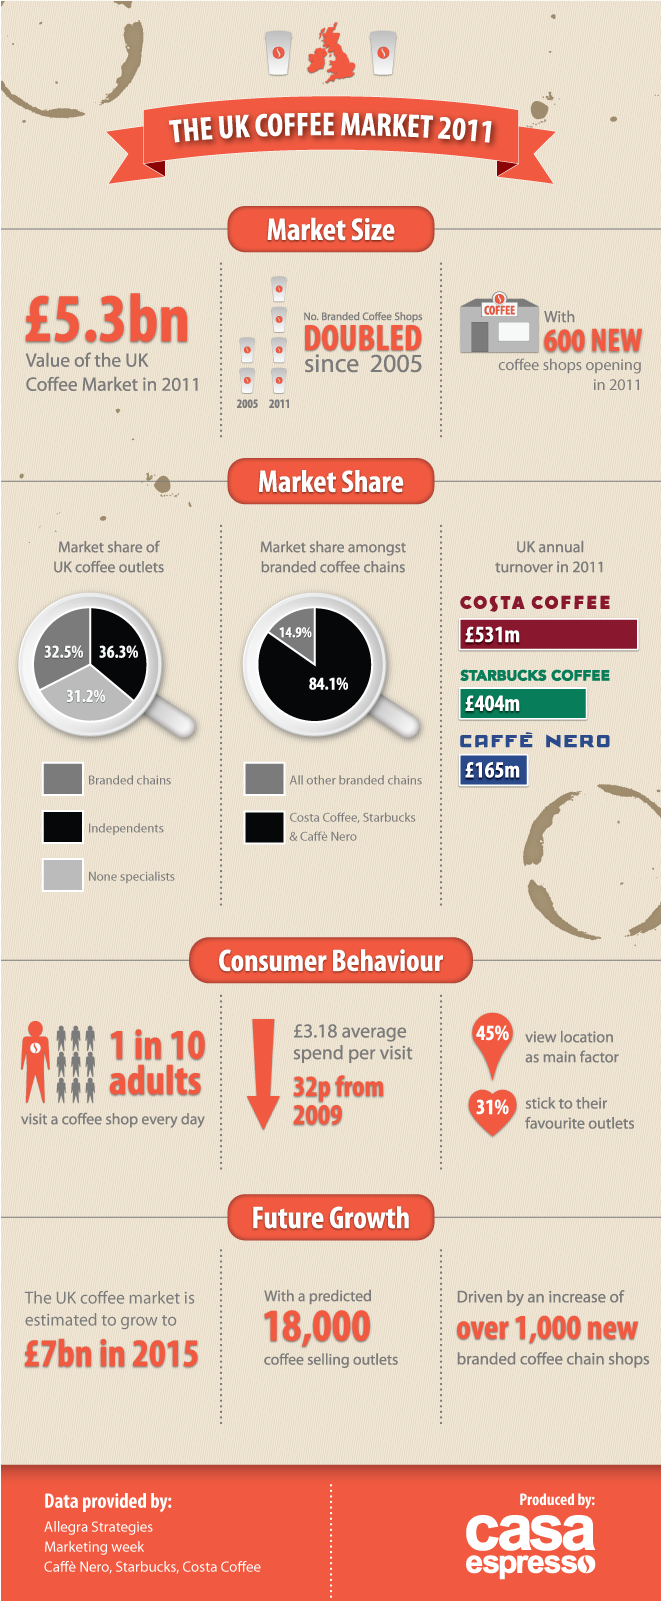 the world coffee market in 2011 2012 Of coffee beans determines market costs and profitability margins the world price of coffee has risen sharply in recent years due to growing demand in other countries and the resulting supply shortages.